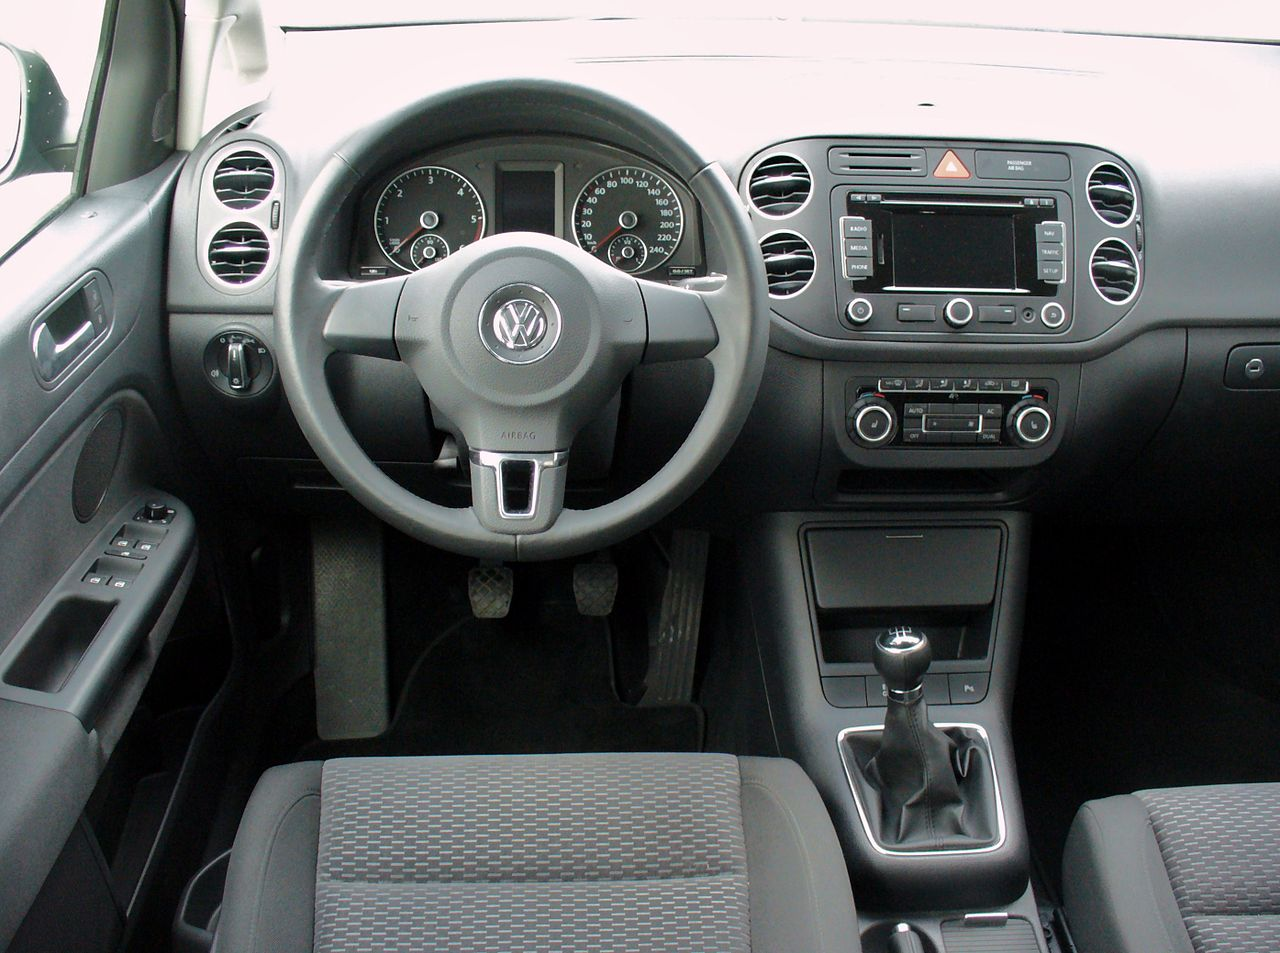 file vw golf vi plus 1 6 tdi comfortline united grey interieur jpg wikimedia commons. Black Bedroom Furniture Sets. Home Design Ideas